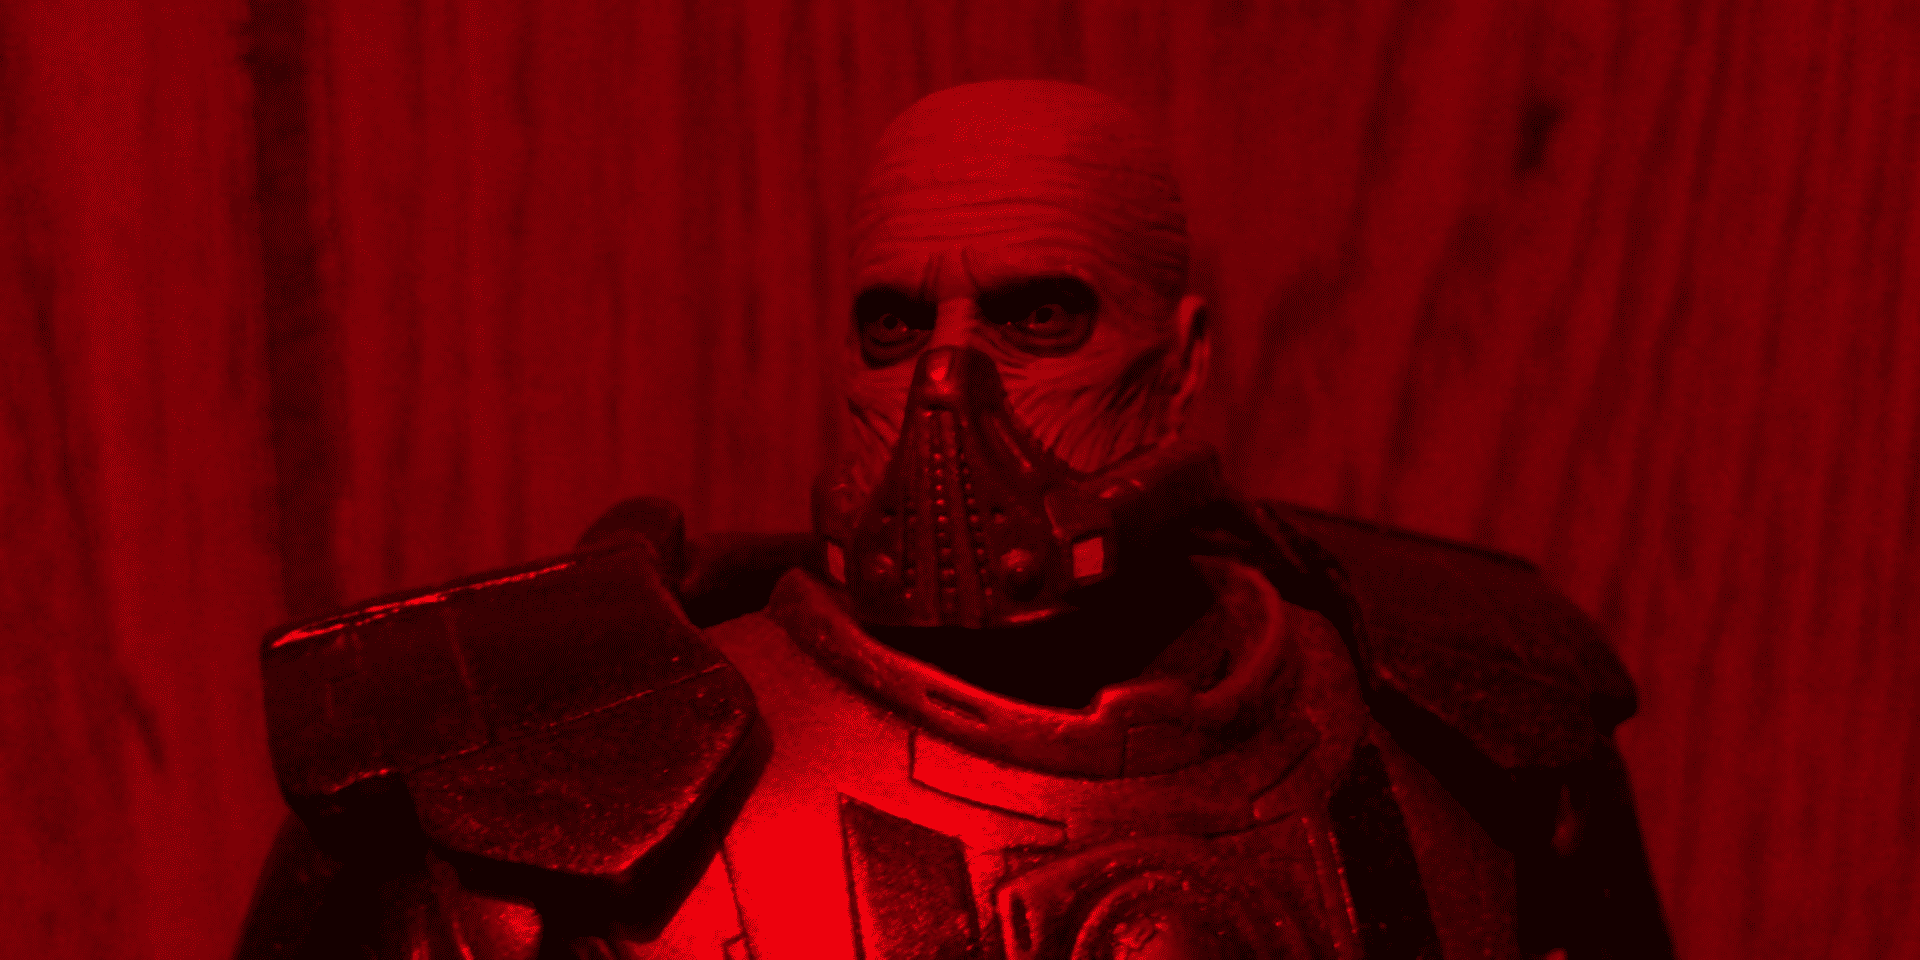 darth malgus has some breathing problems, it seems